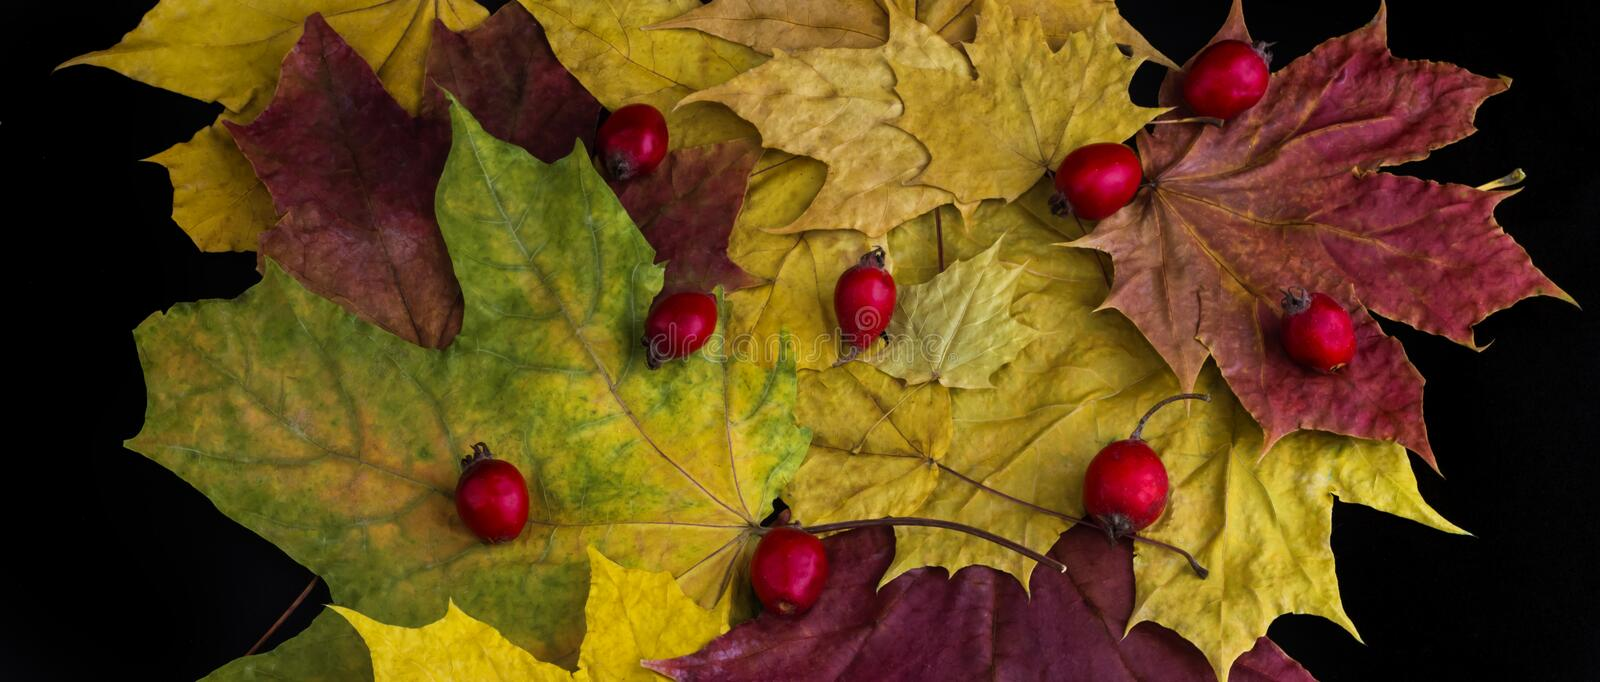 Autumn maple leaves with red hawthorn berries lie on a black background stock photos